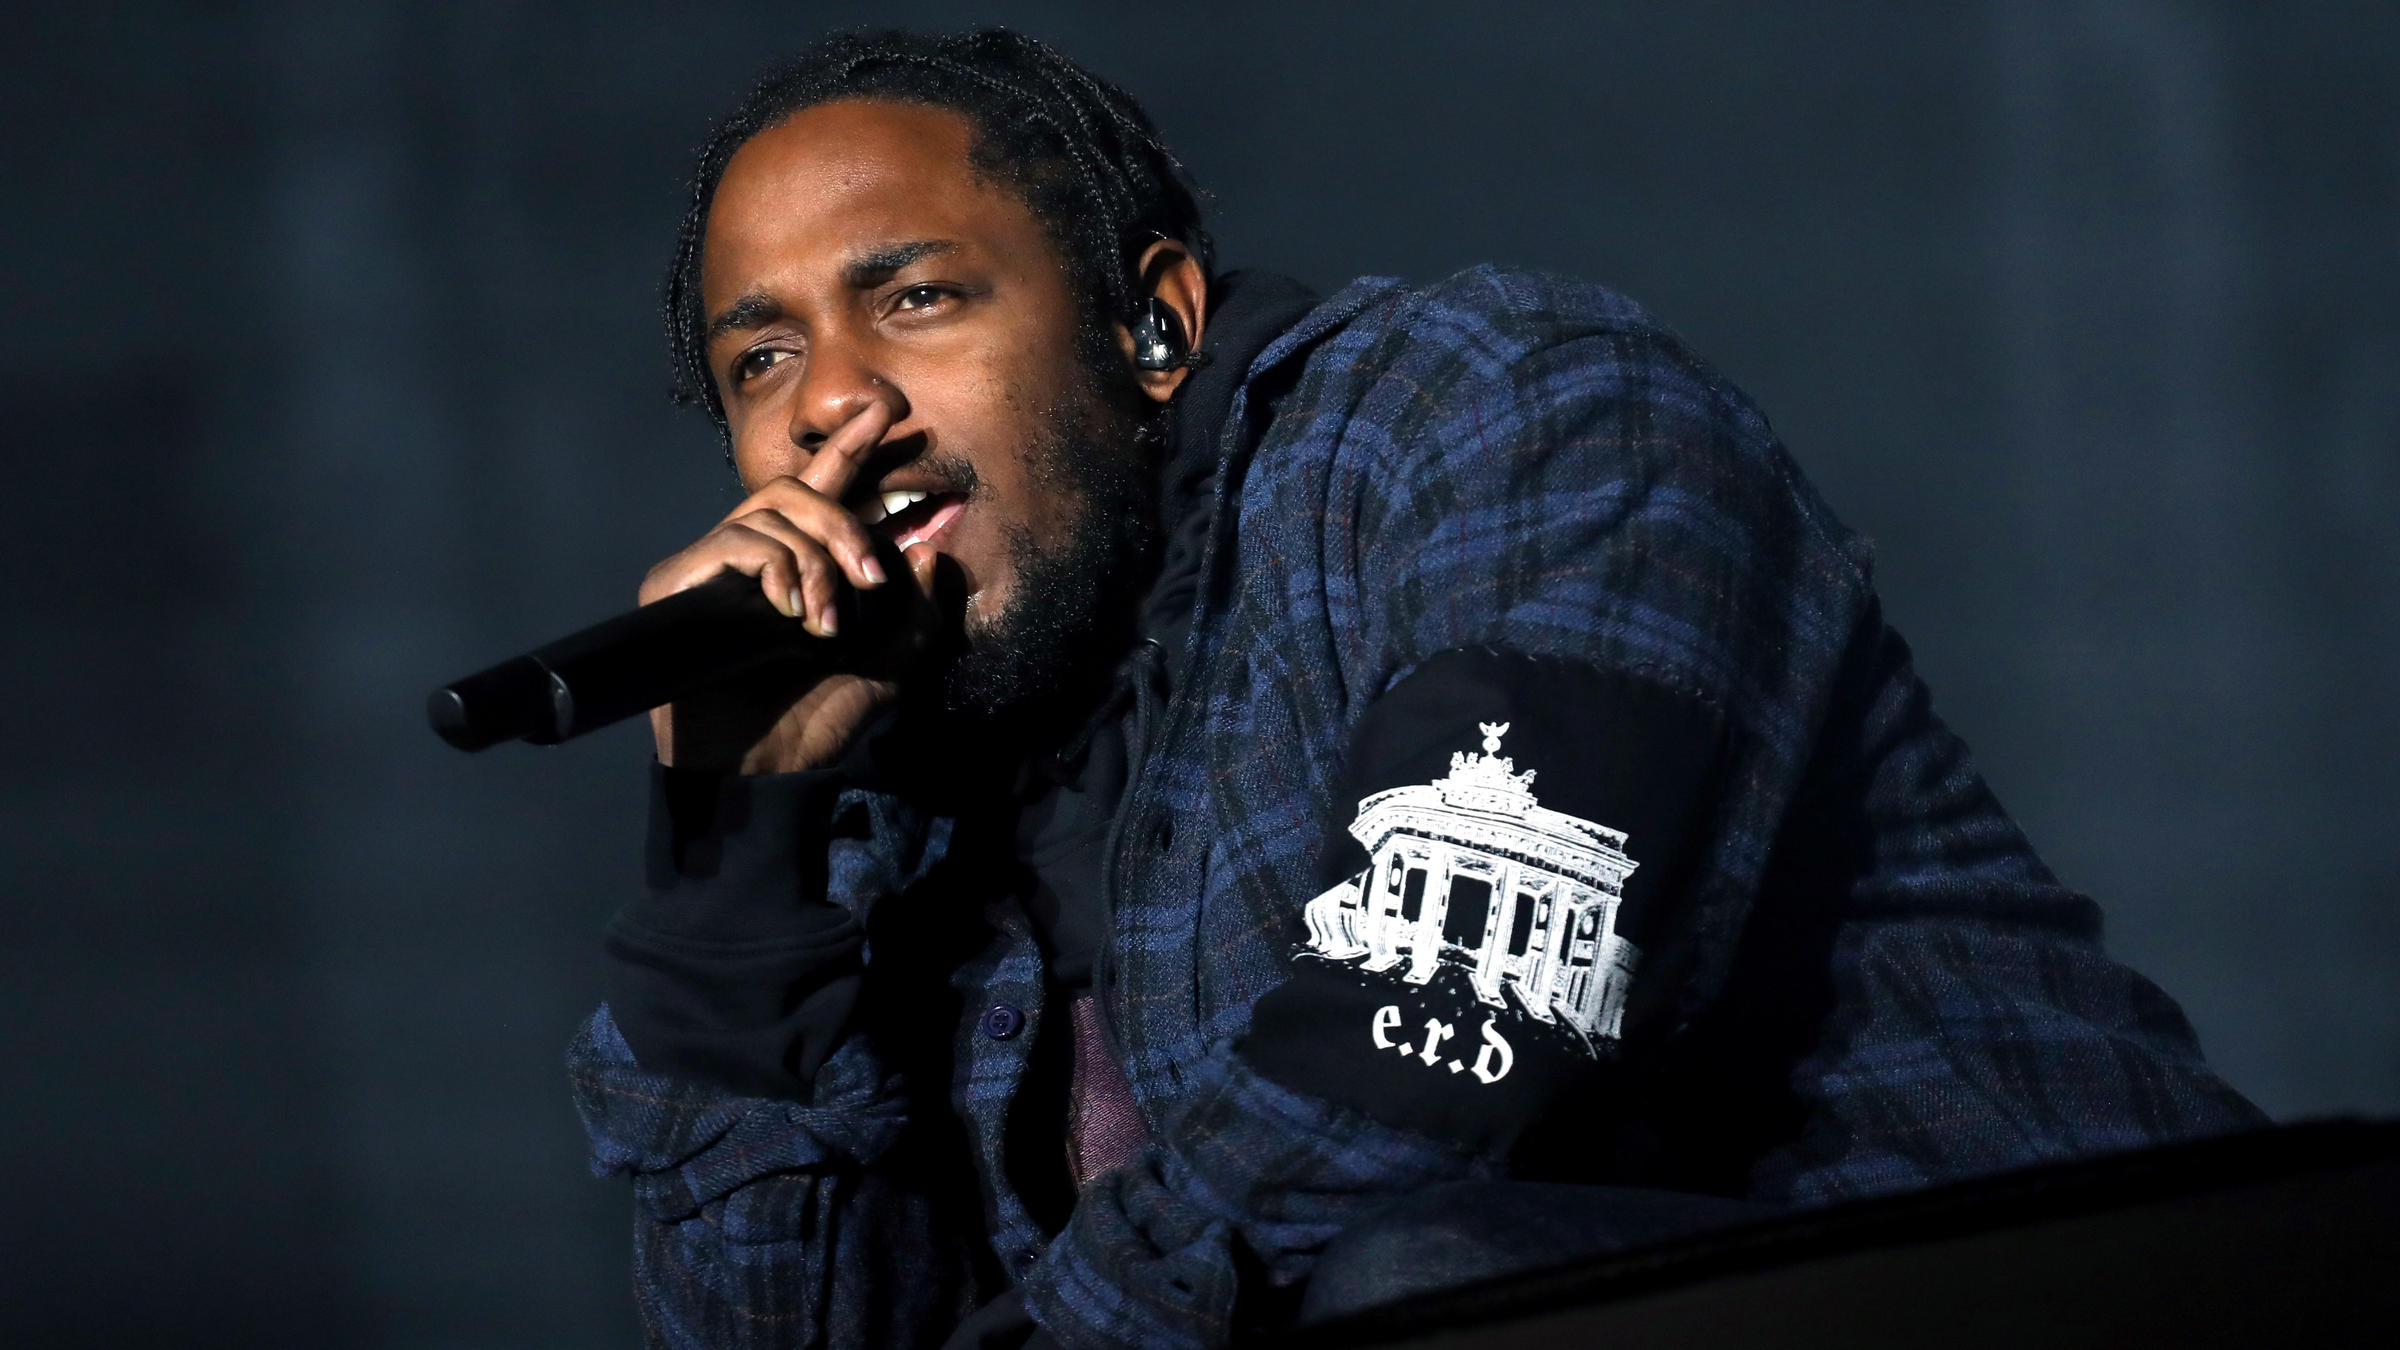 Is U2 on Kendrick Lamar's new album?